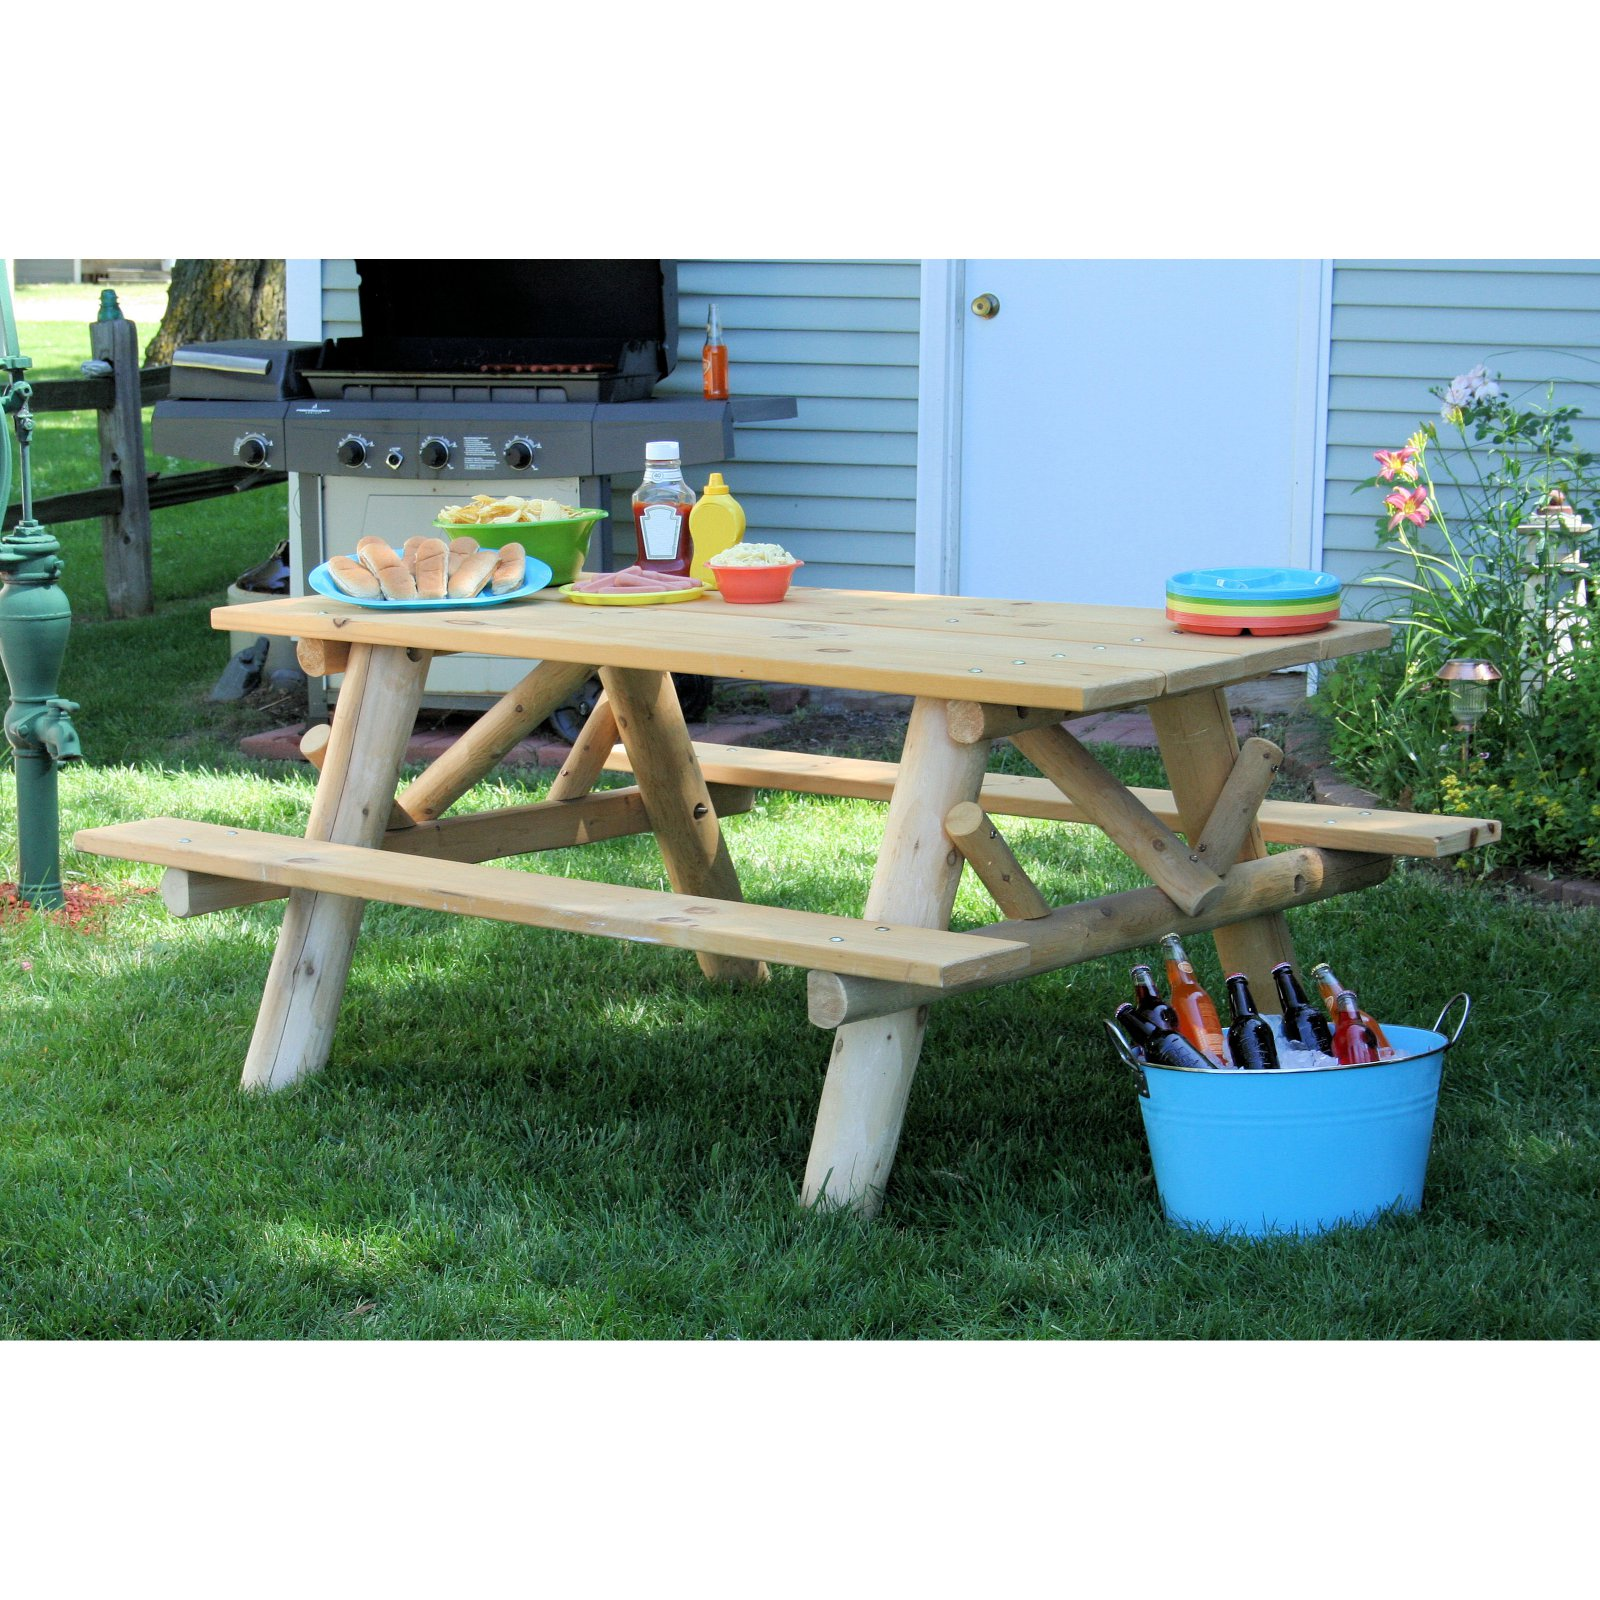 Lakeland Mills 6' Picnic Table with Attached Benches